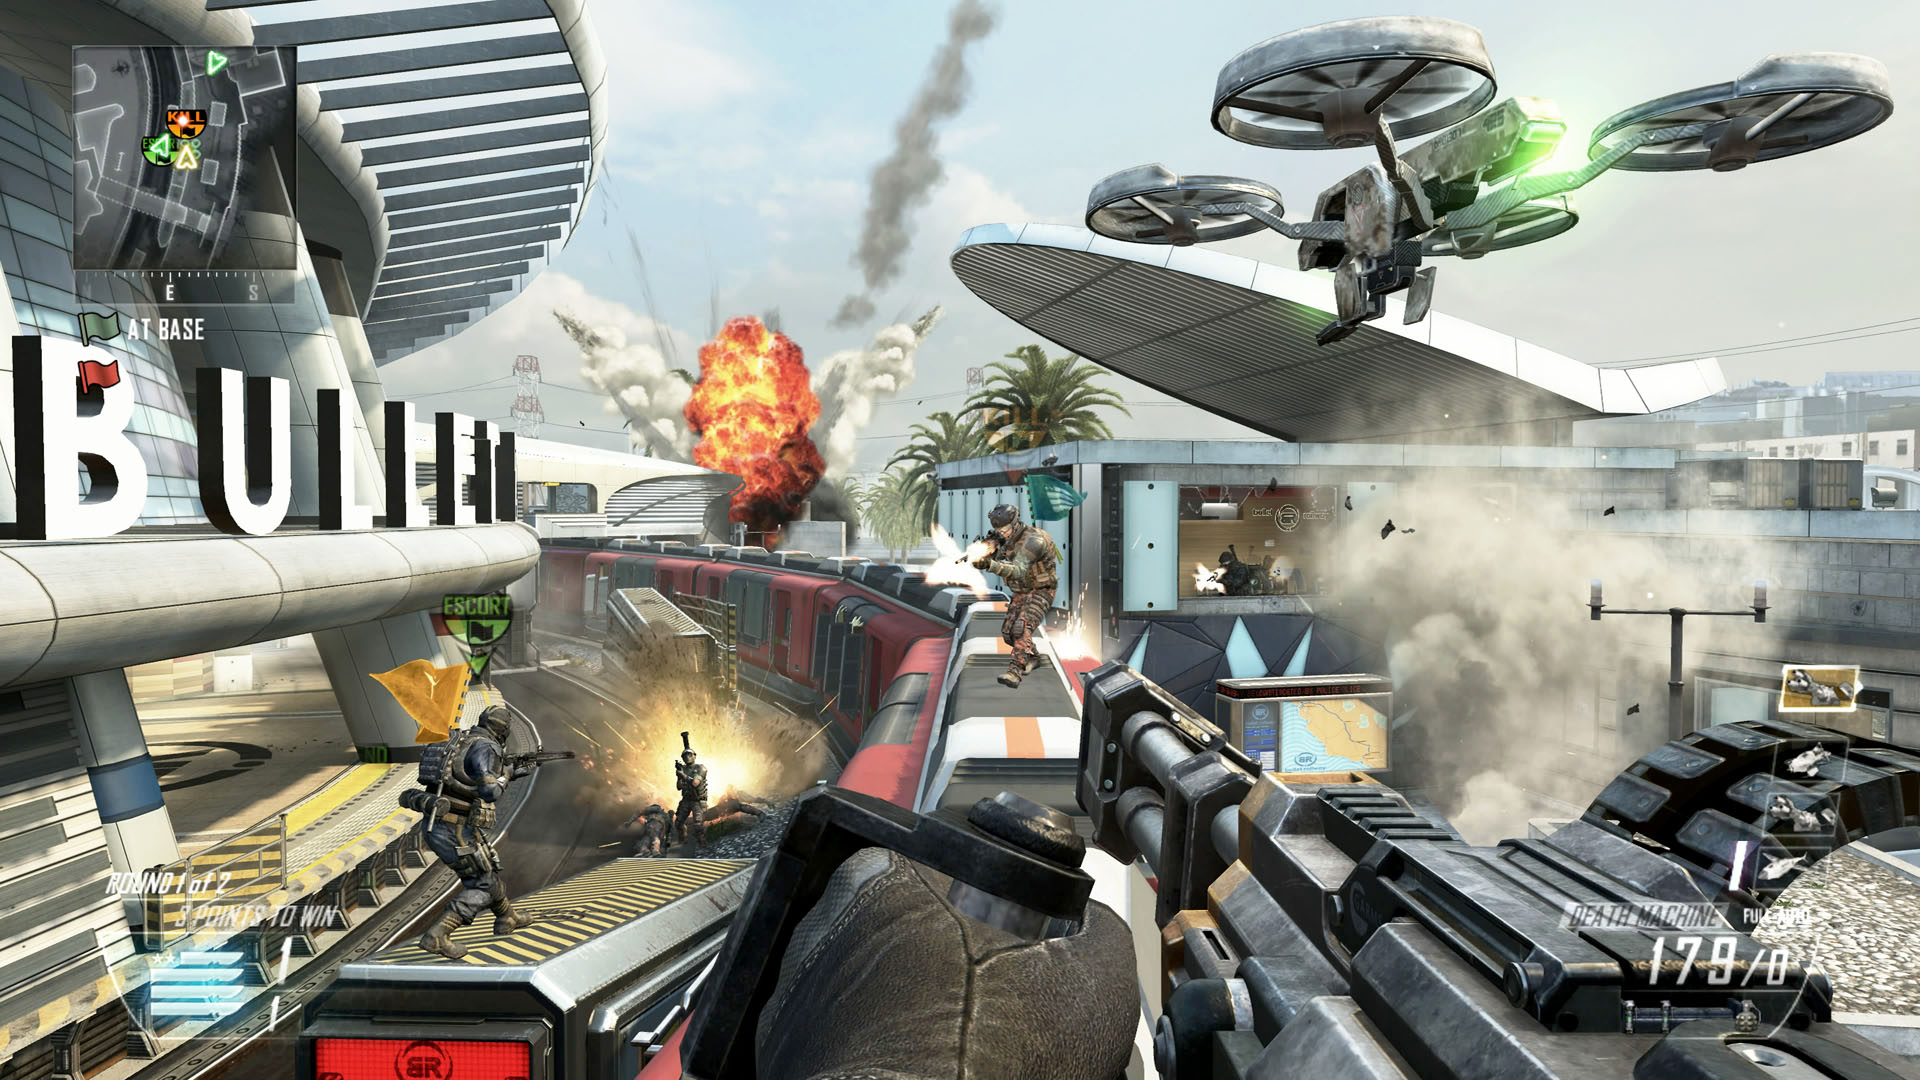 'Call of Duty: Black Ops II' free on Steam this weekend